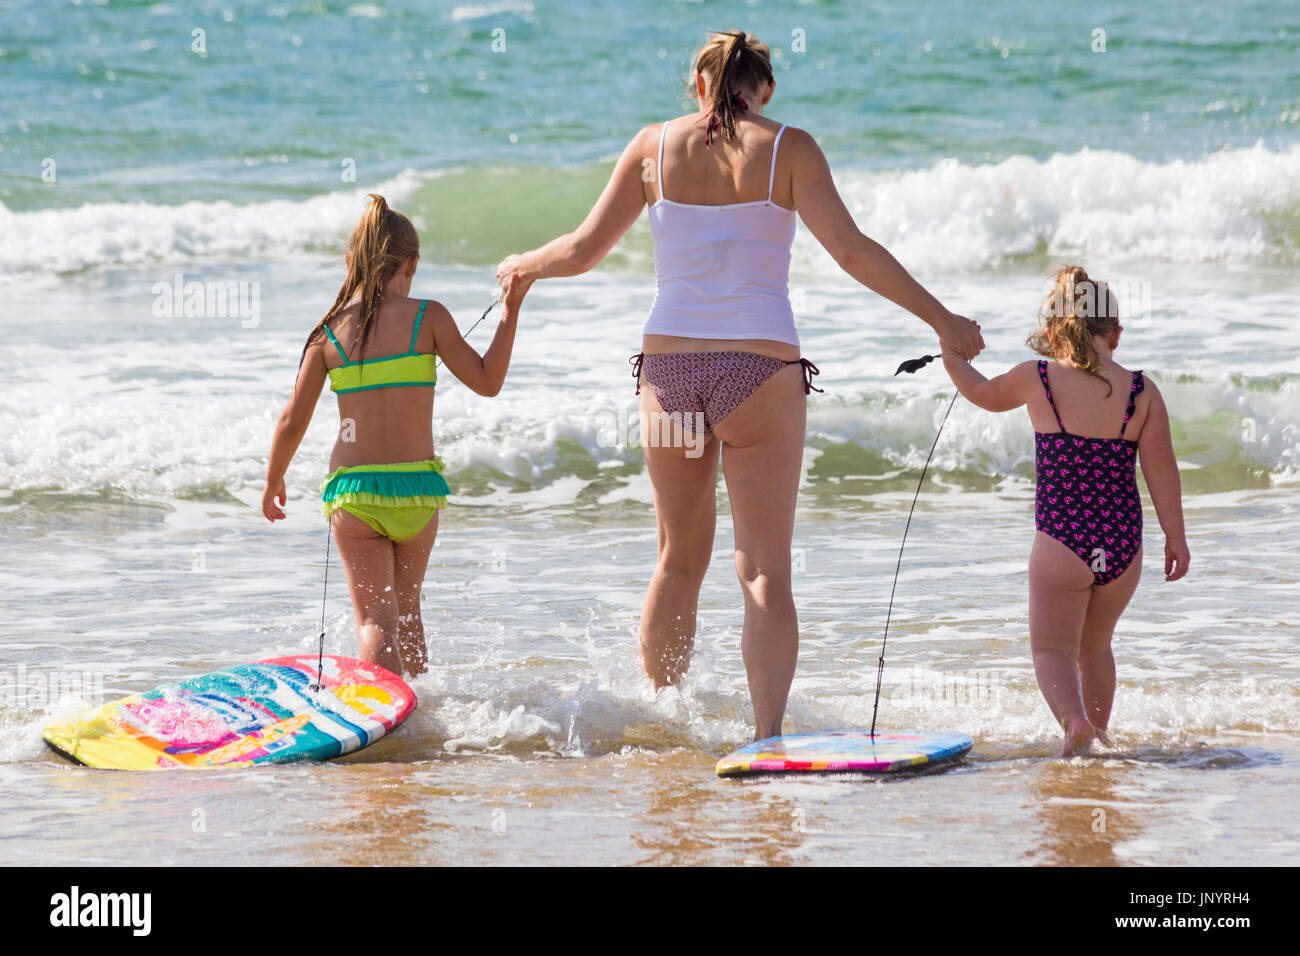 Bournemouth, Dorset, UK. 31st July, 2017. UK weather: after a weekend of mixed weather, a warm sunny start to the new week, as visitors head to the seaside to make the most of the sunshine. Mia, aged 6, and Bella, aged 4, enjoy playing in the sea with their body boards. Credit: Carolyn Jenkins/Alamy Live News - Stock Image